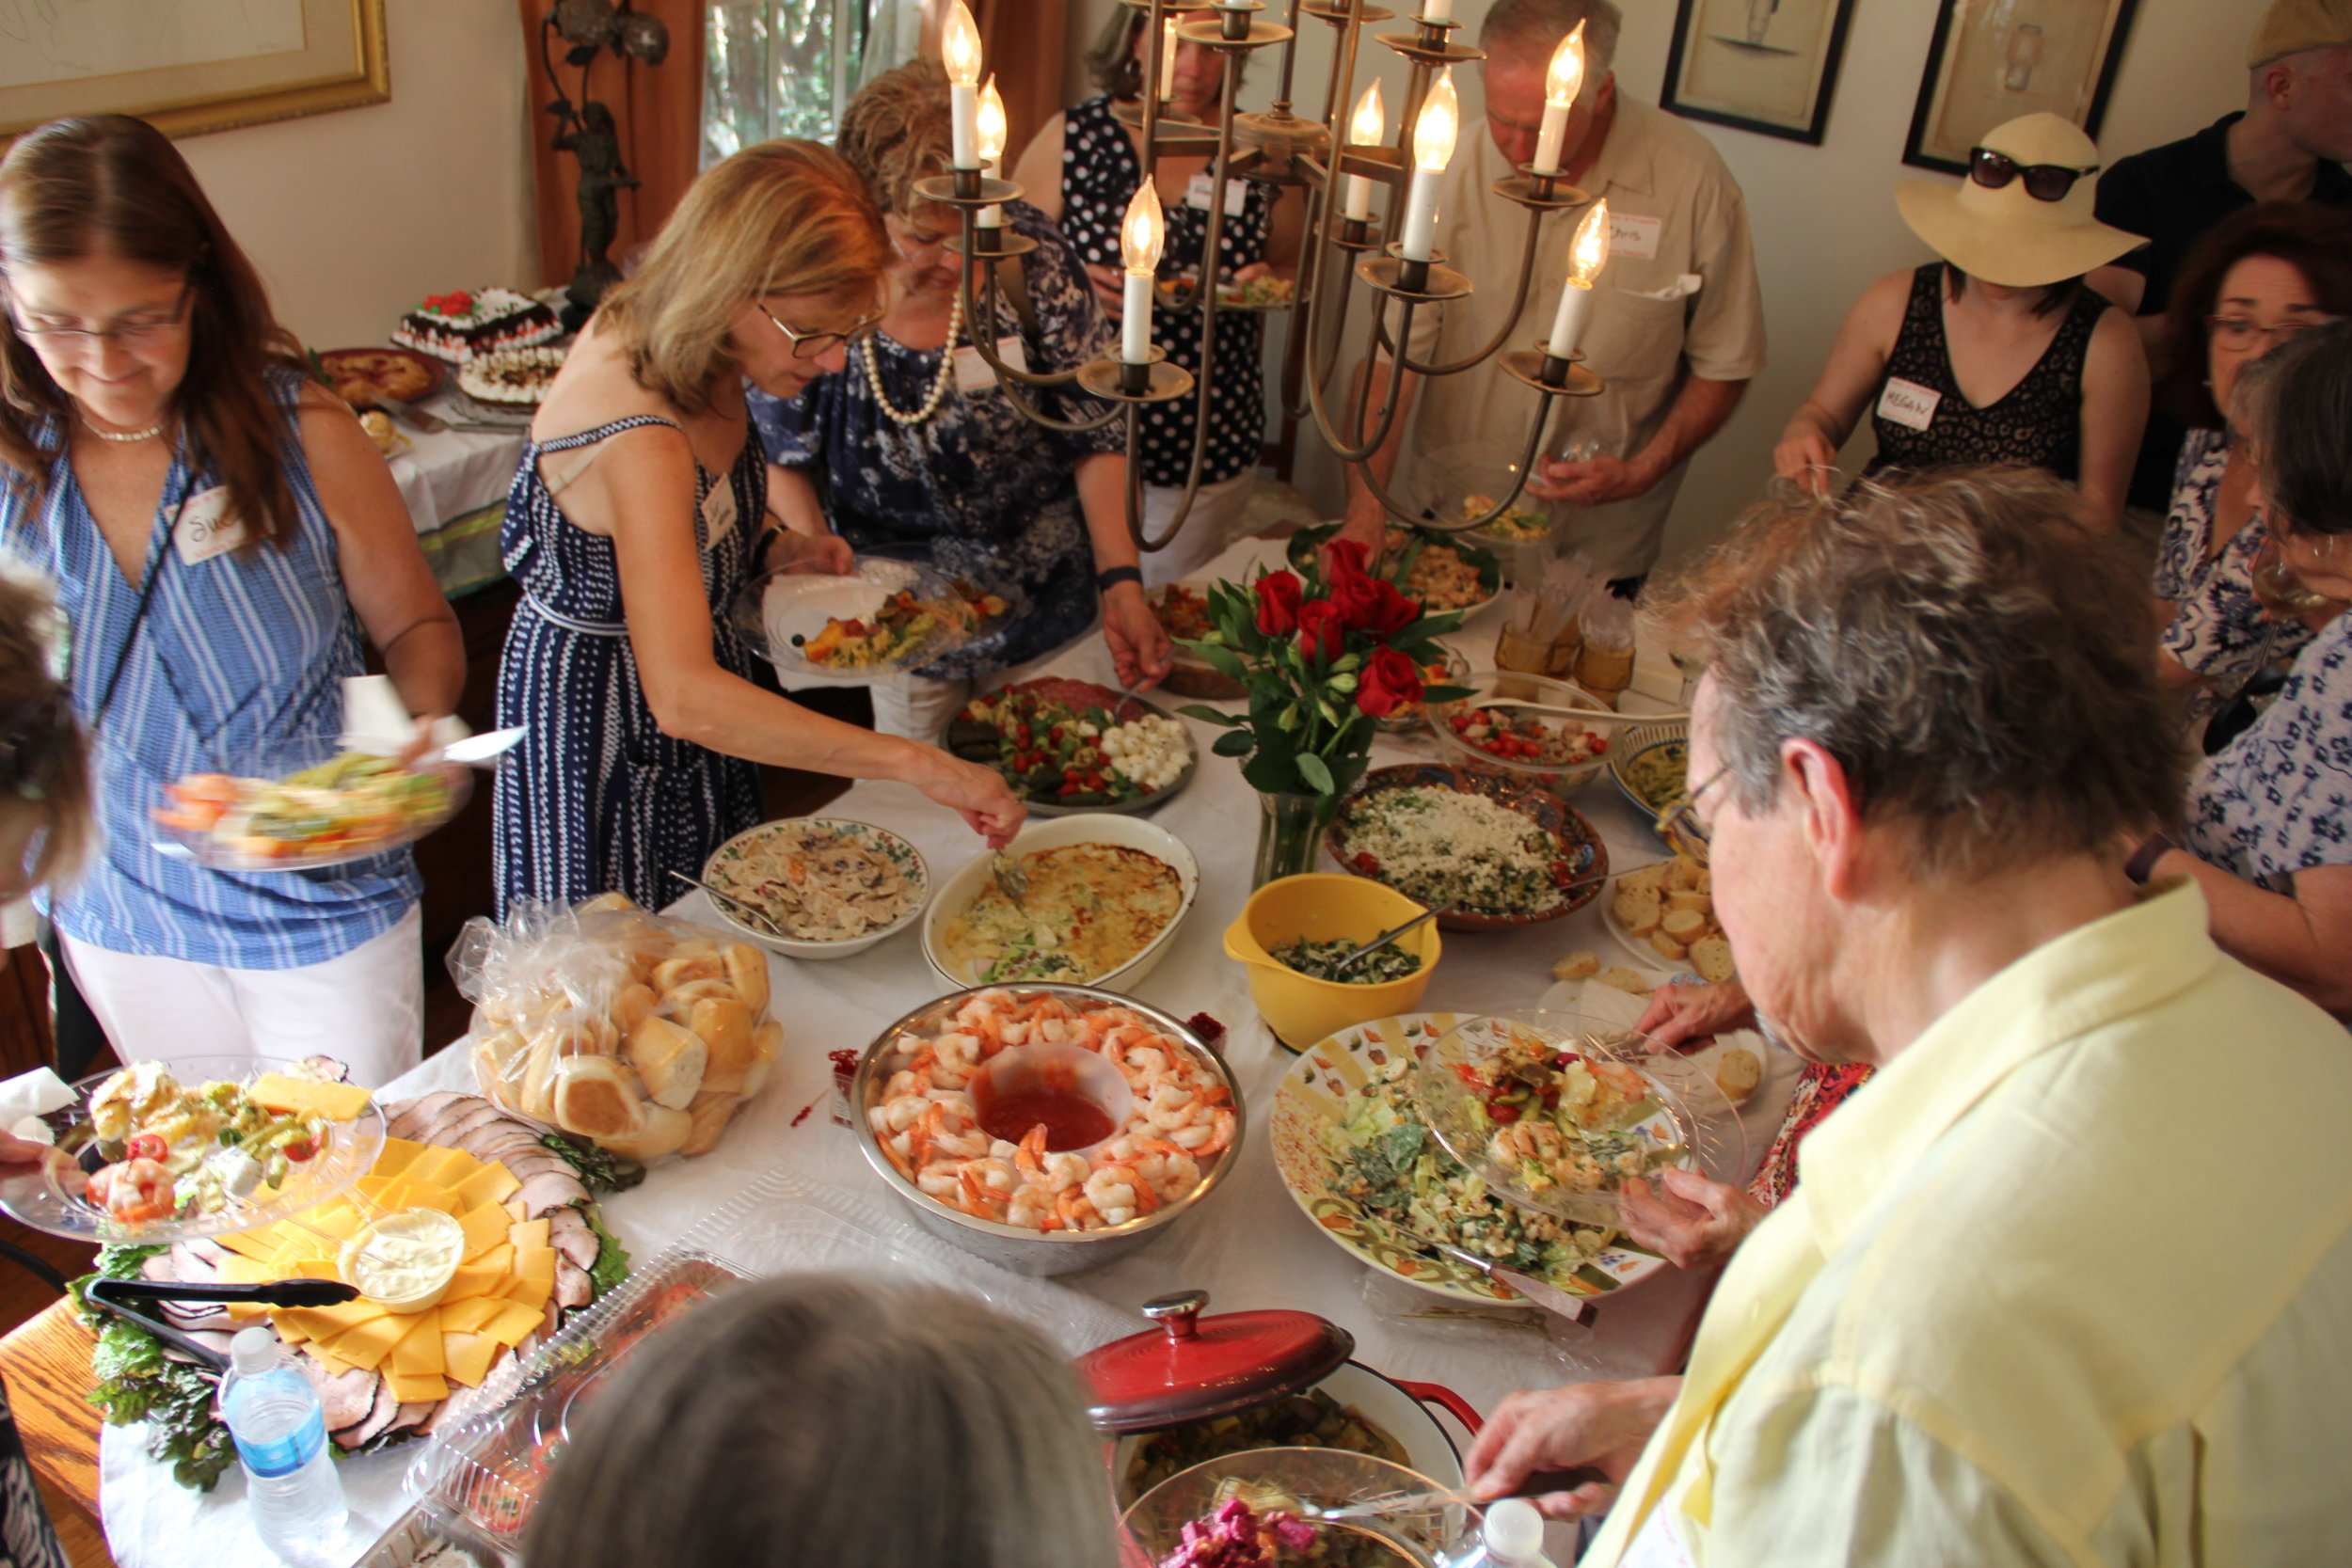 Many thanks to all who brought delicious food to share - the best way to celebrate!